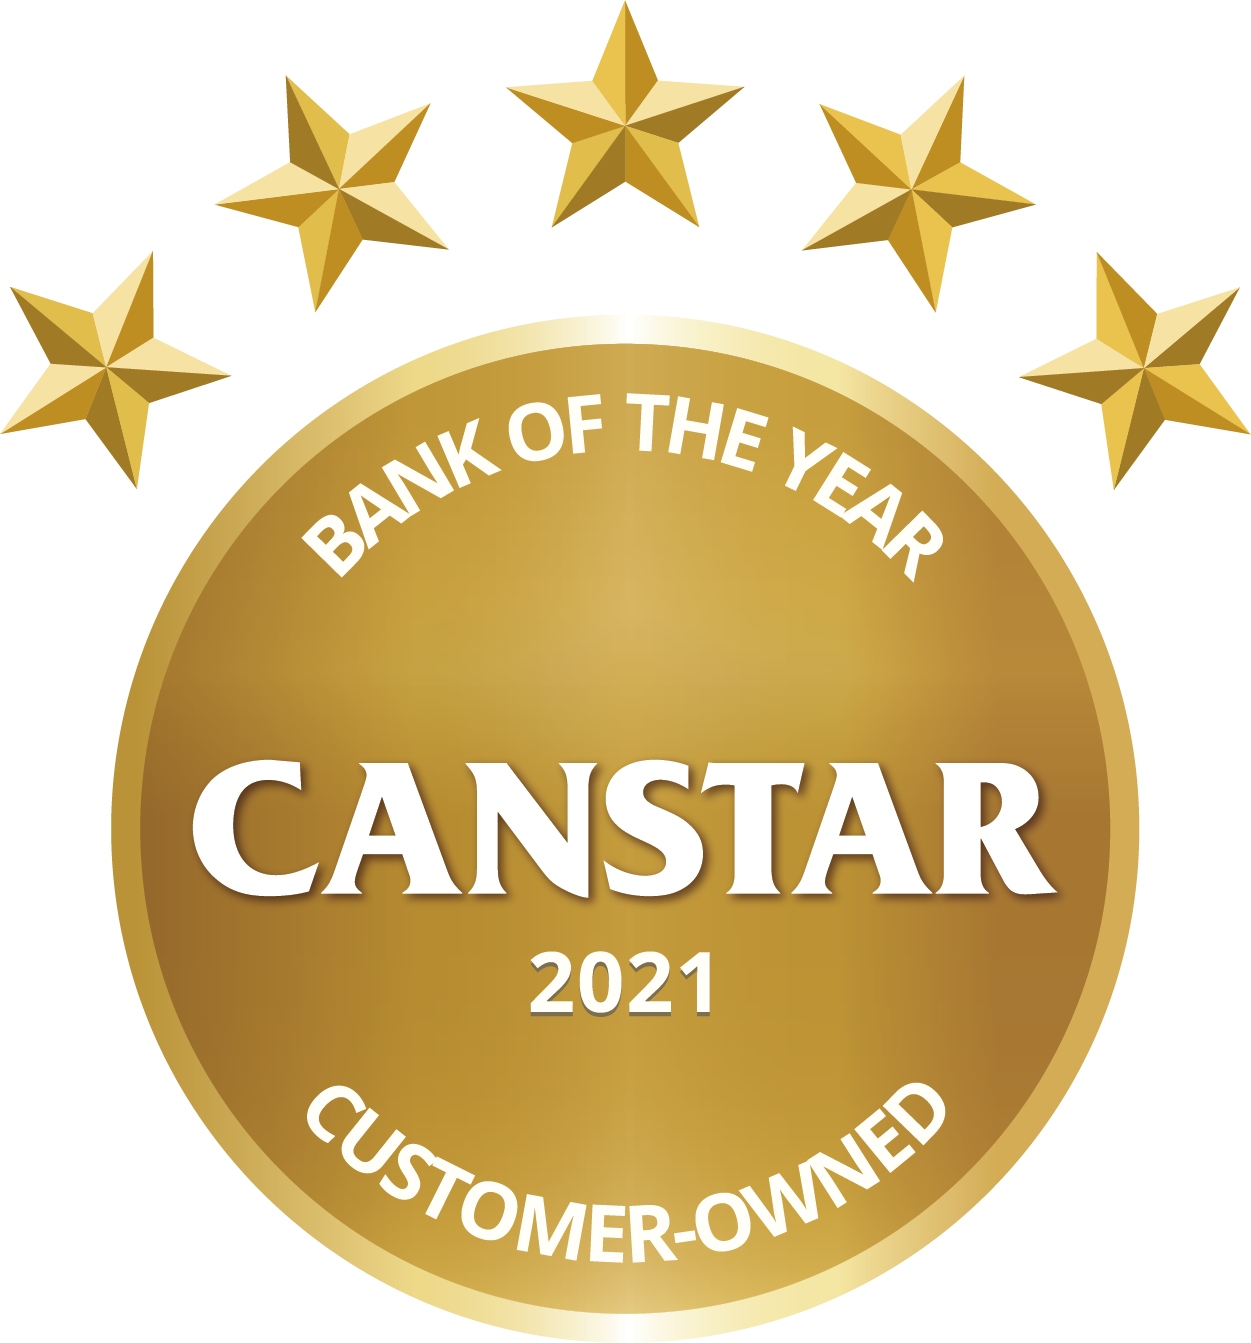 Canstar Customer-Owned Bank of The Year 2021